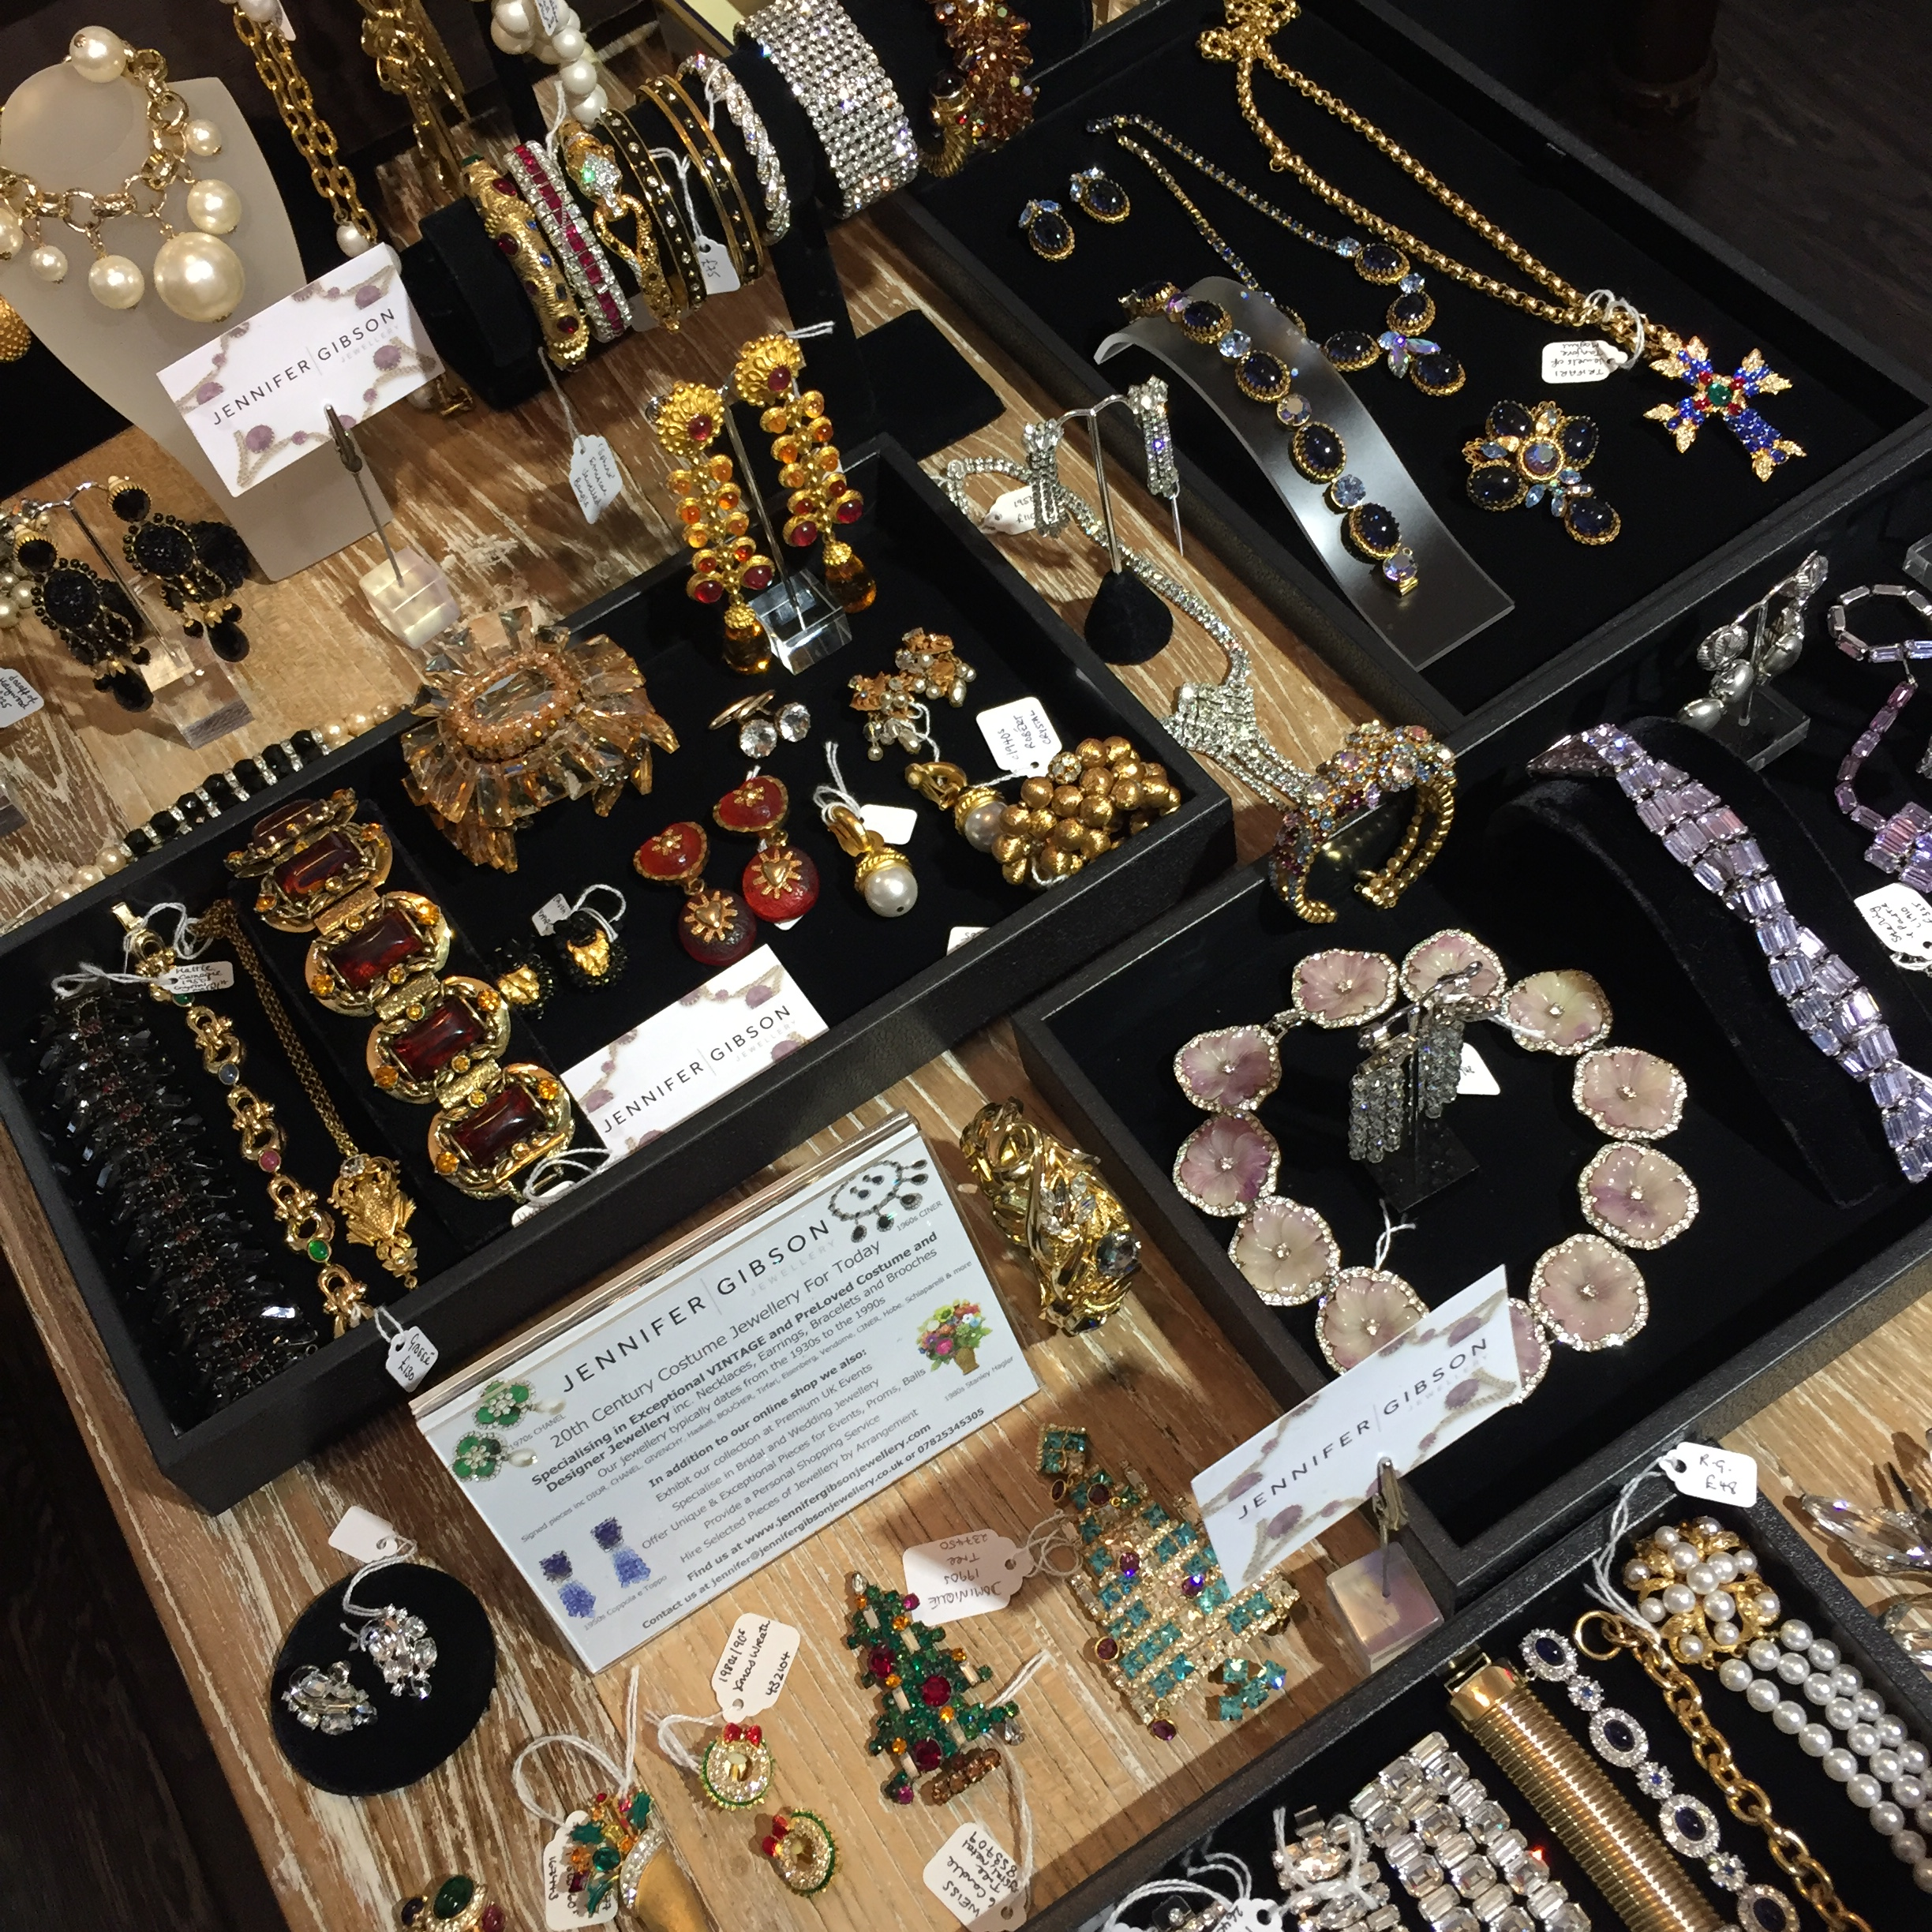 Jewellery Pop Up Shop, Pop Up, Vintage Pop Up, Wilmslow, Cheshire, Altrincham, Hale, Bowden, Manchester Pop Up